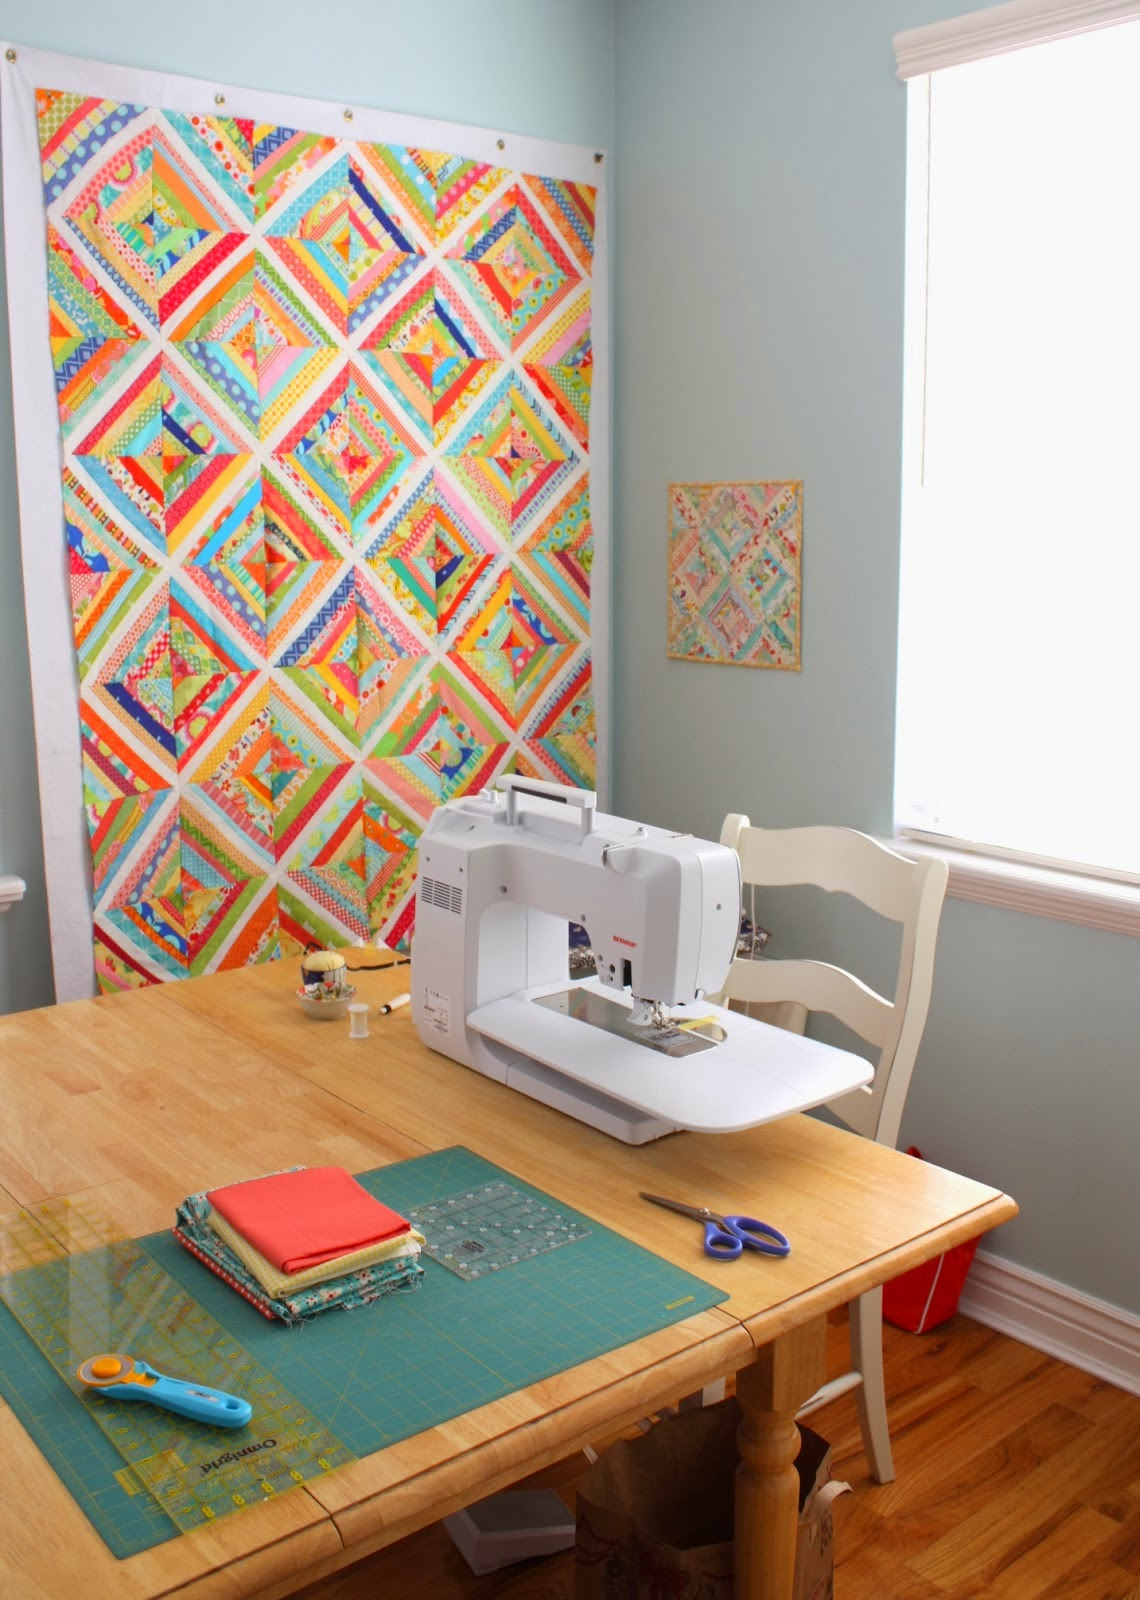 Around the world blog hop diary of a quilter a quilt blog for Dining room quilter